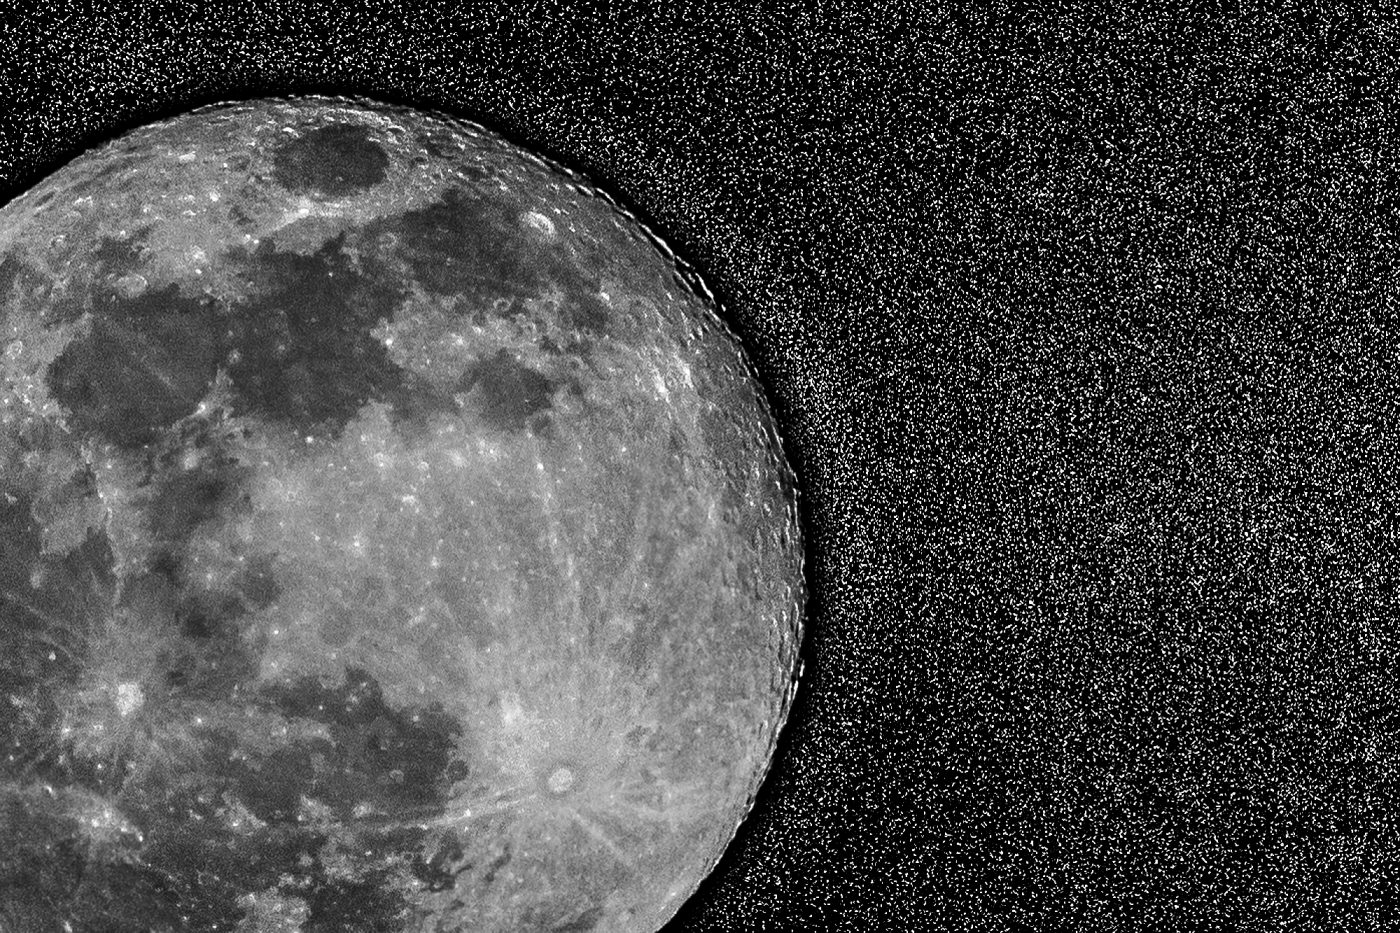 Luna immersa tra le stelle